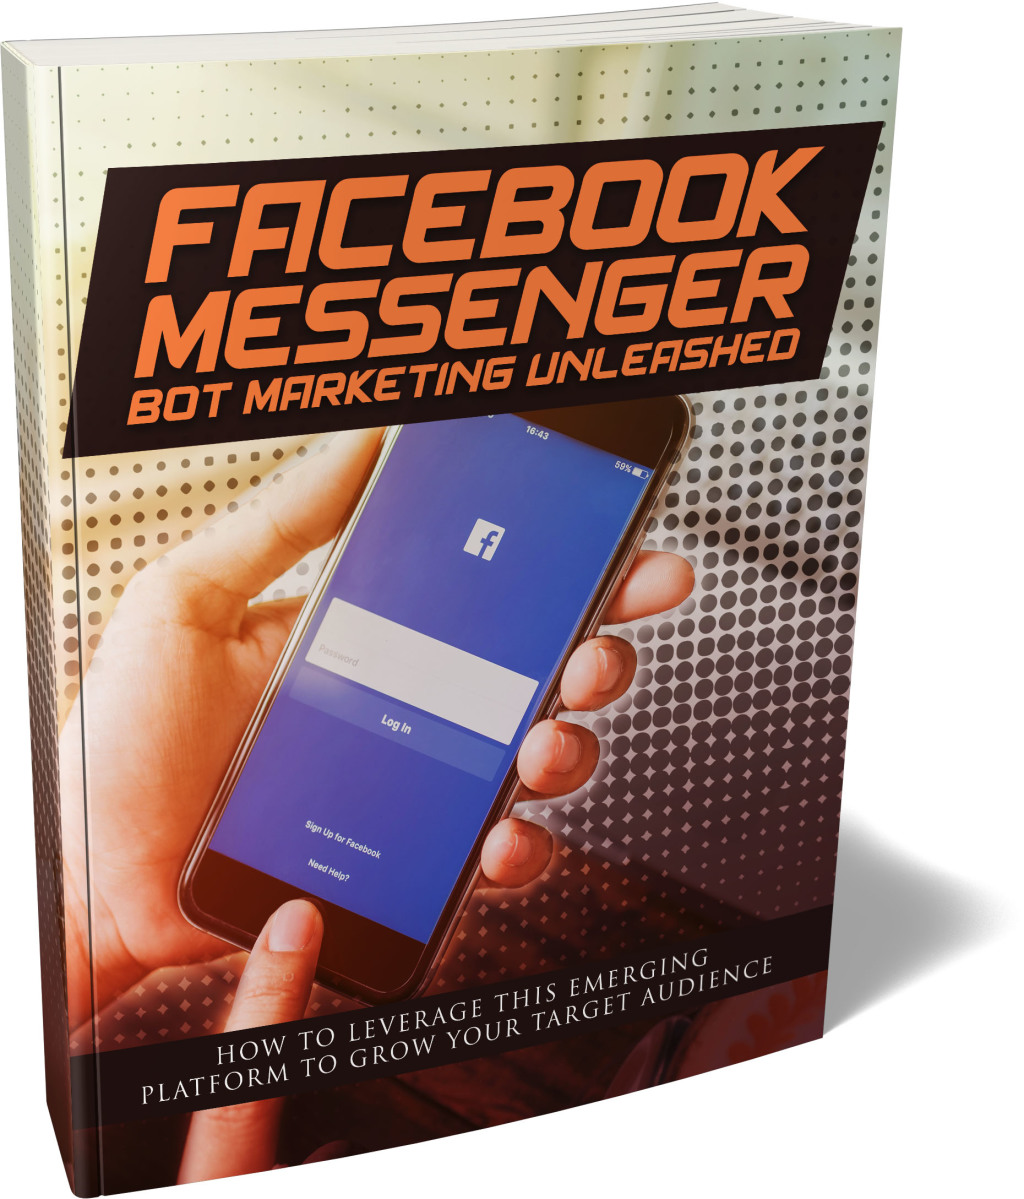 Facebook Messenger Bot Marketing Unleashed